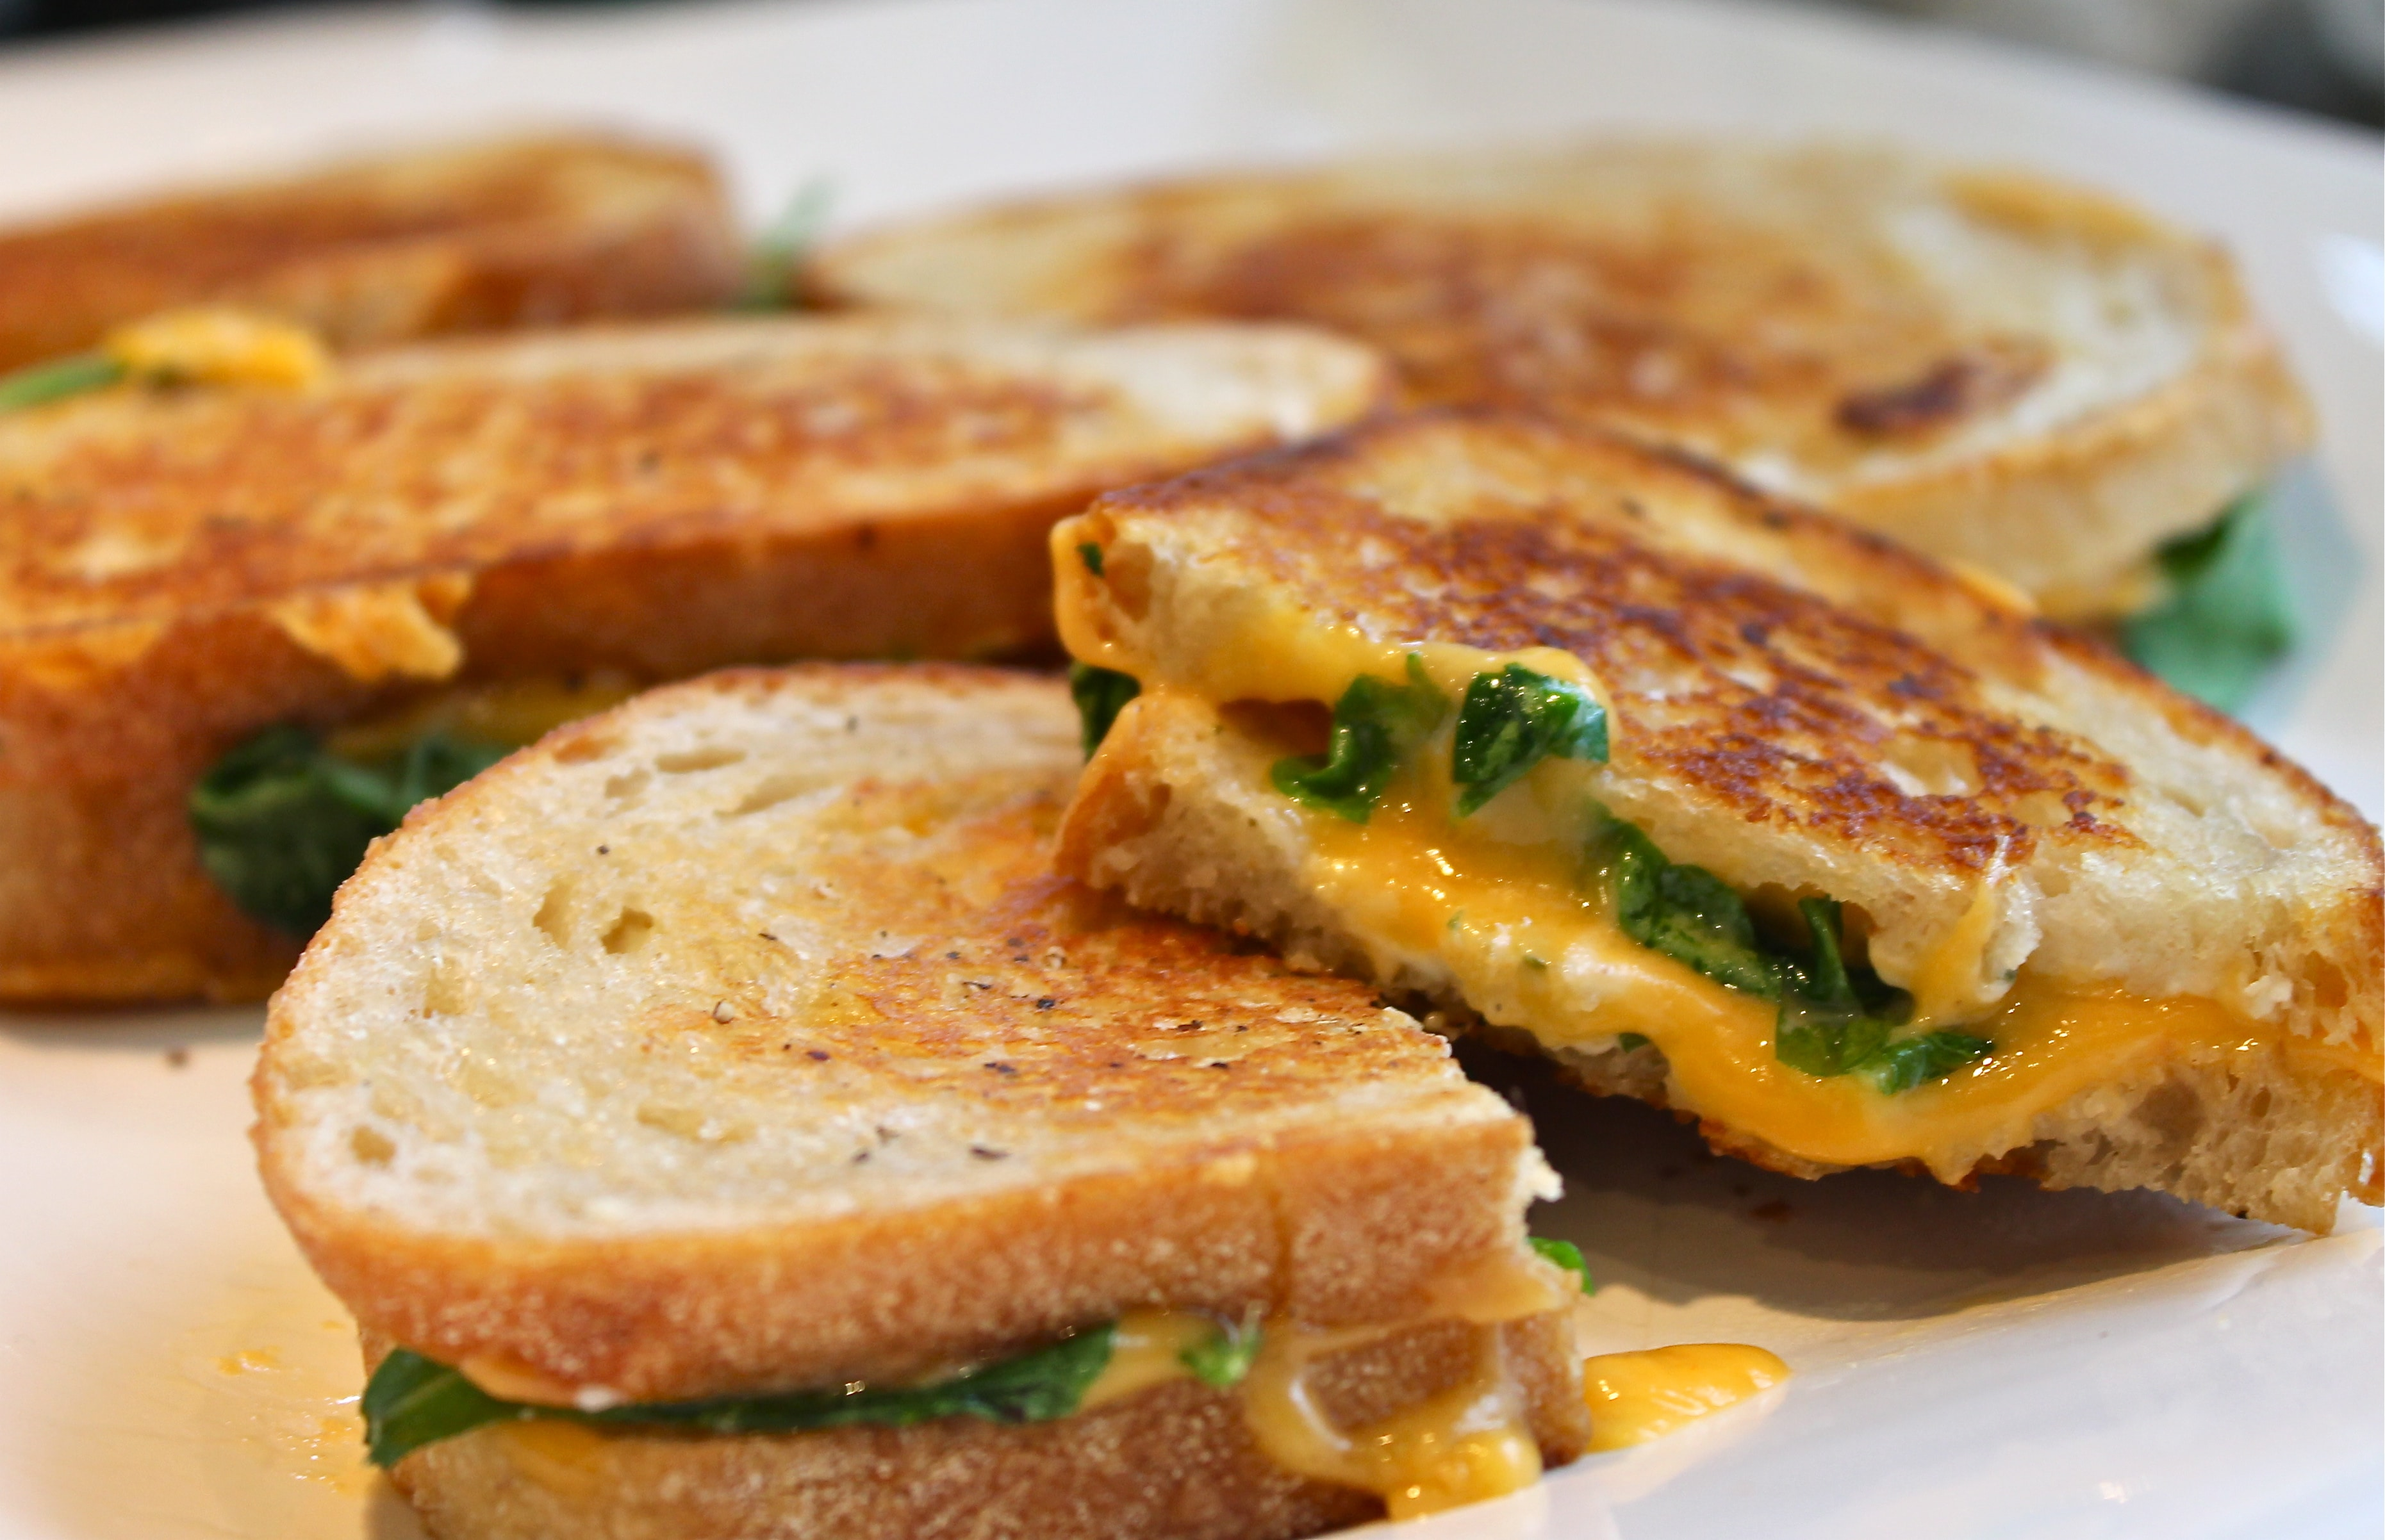 Sharp Cheddar Boursin and Arugula Grilled Cheese Sandwiches